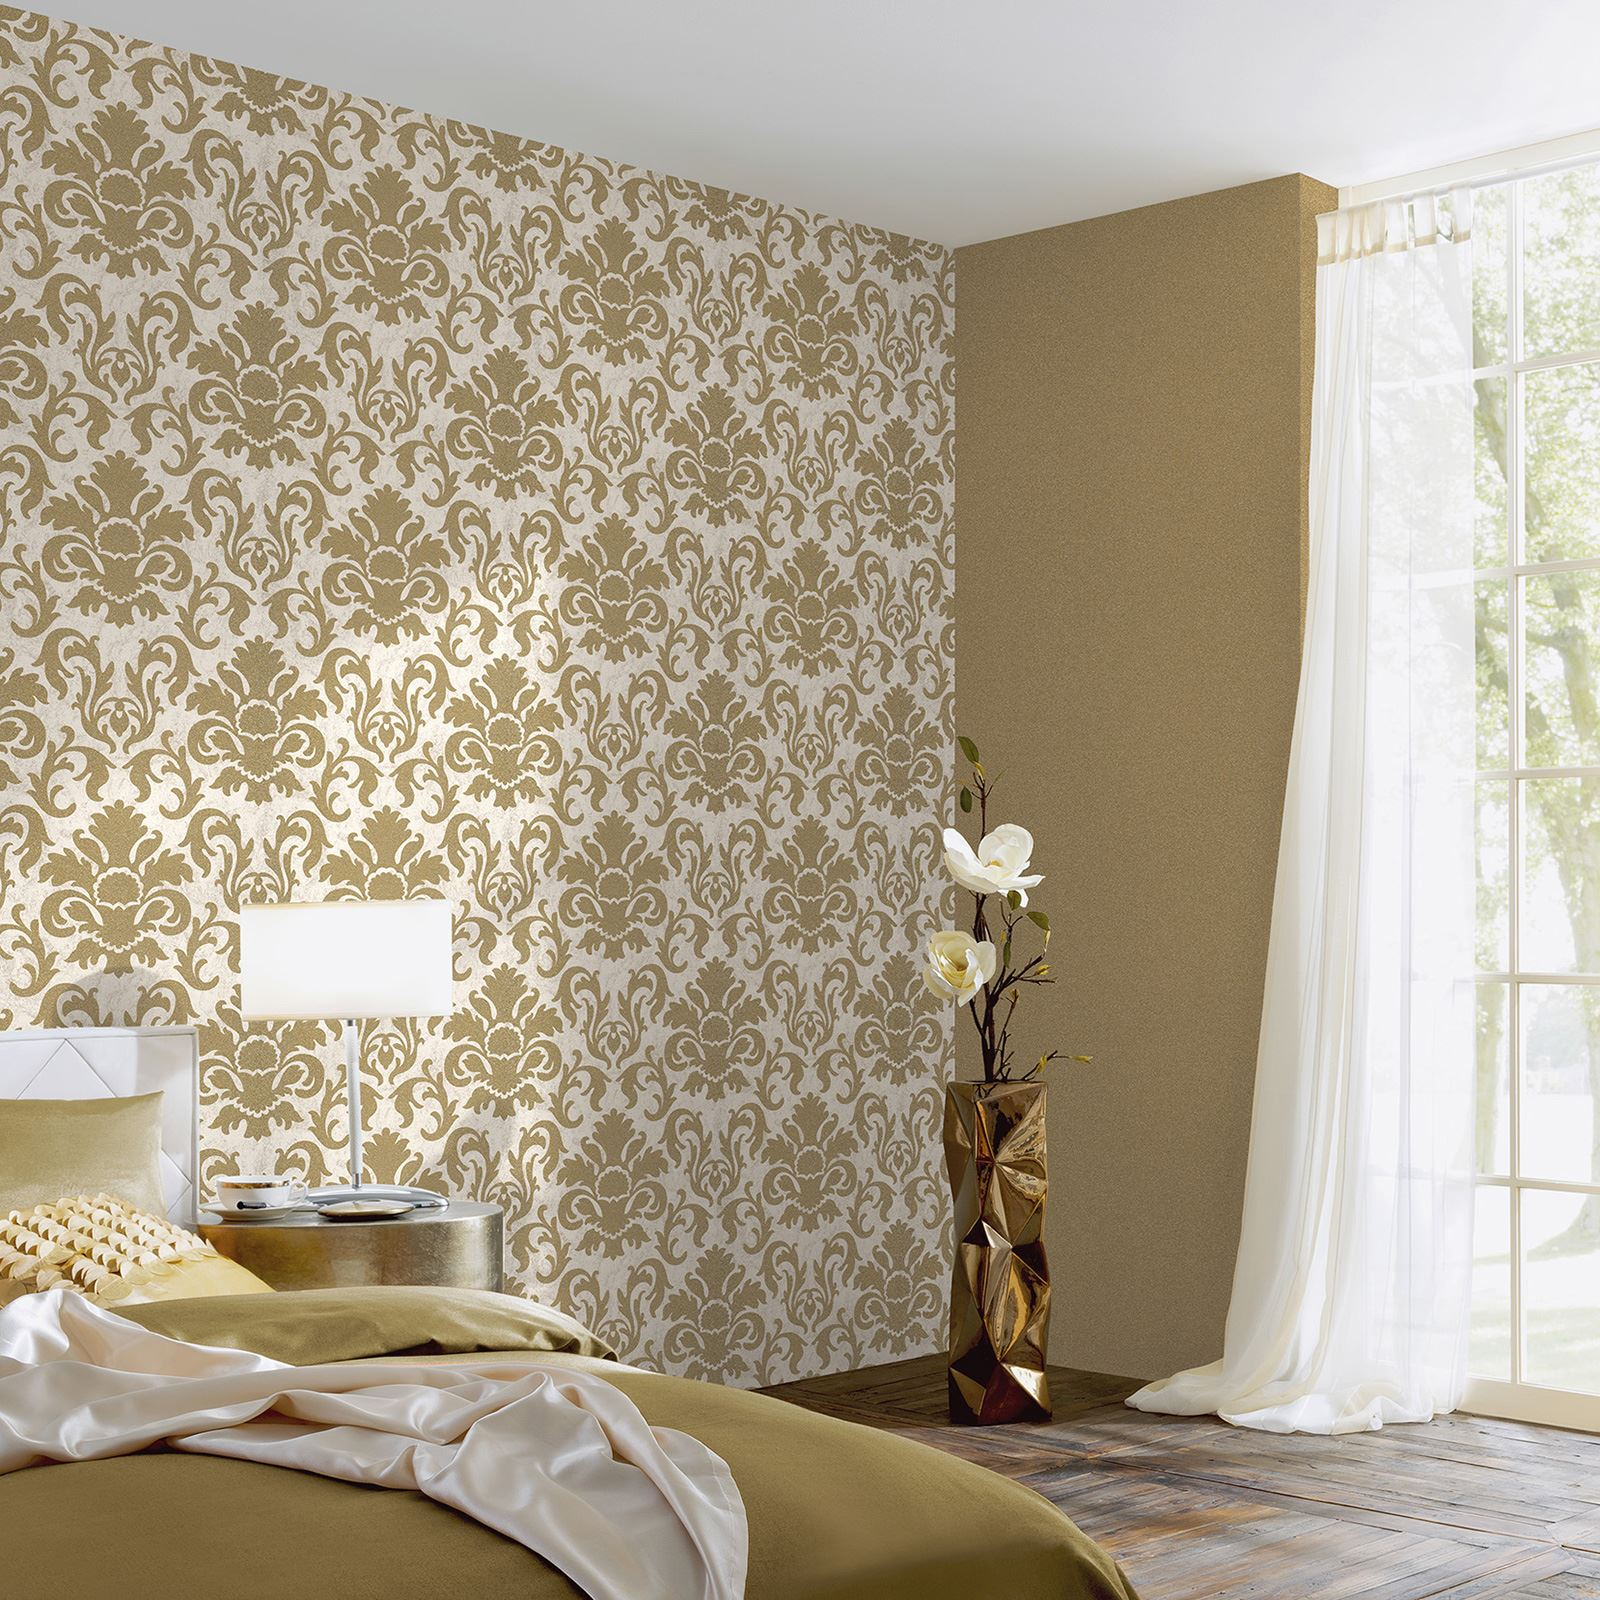 Silver Glitter Wallpaper For Bedroom Pamps Carat Damask Glitter Wallpaper Feature Wall Decor Gold